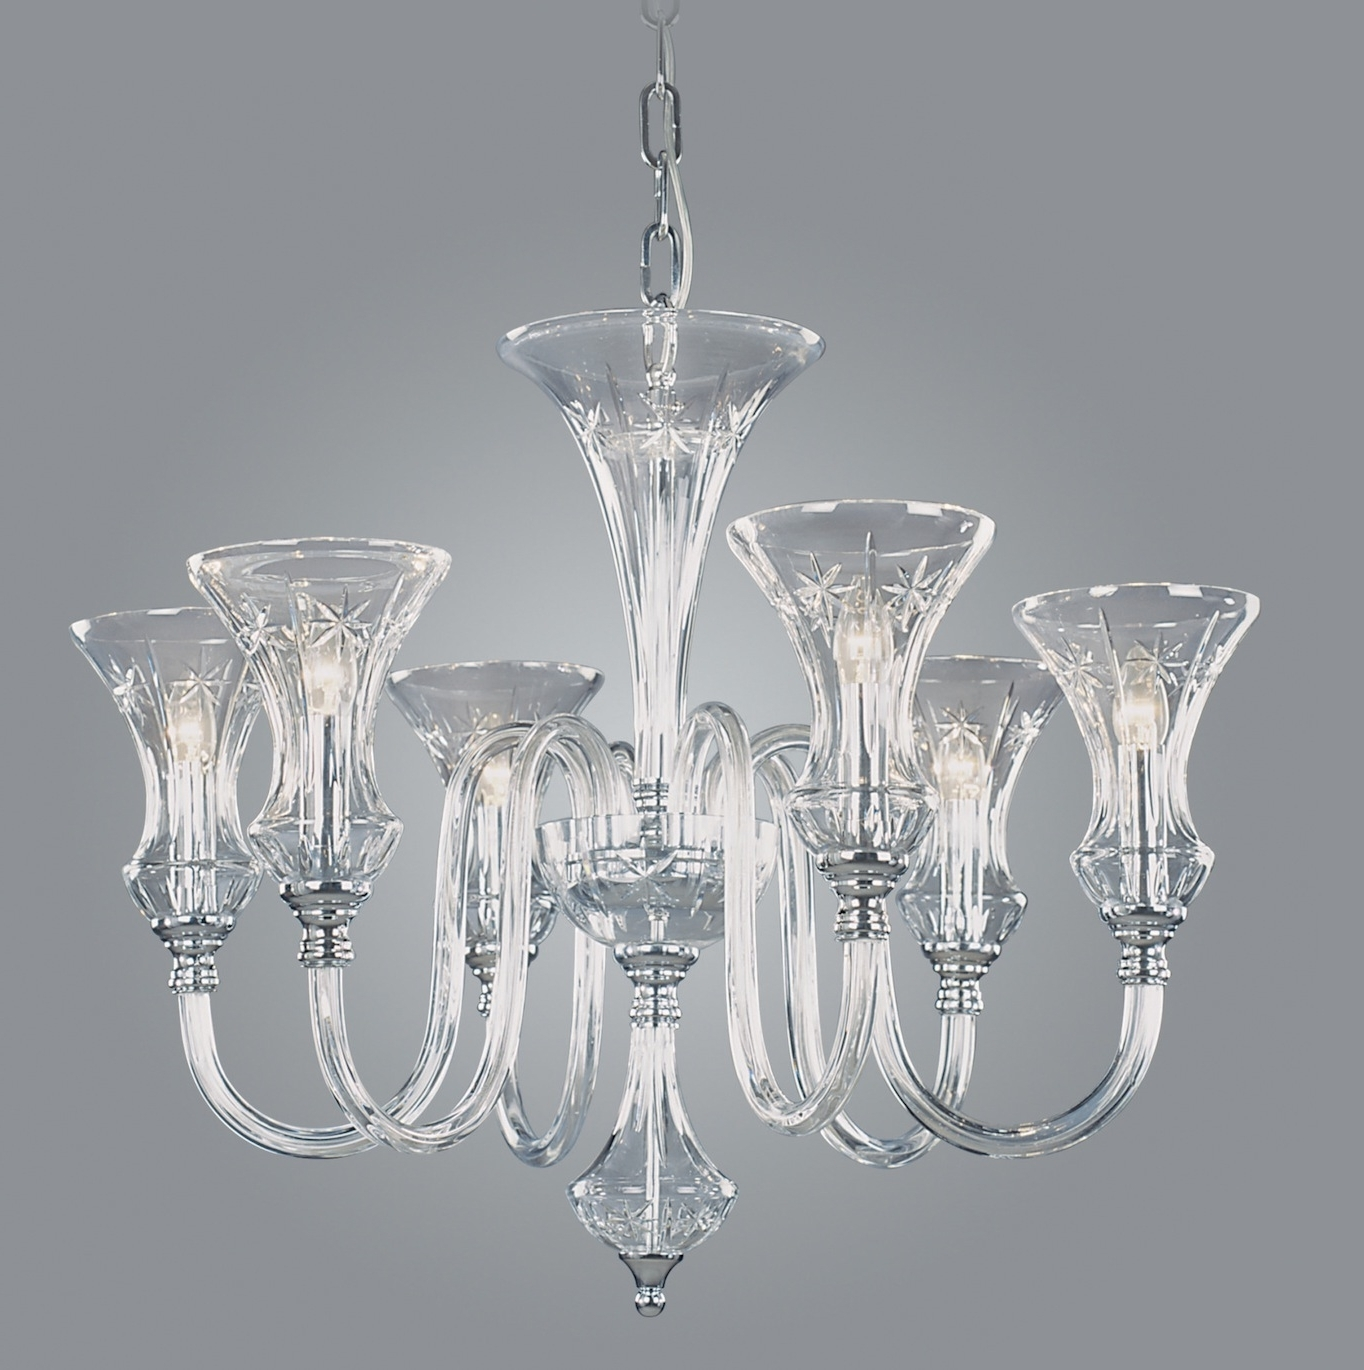 Widely Used Contemporary Modern Chandeliers Throughout Modern Contemporary Crystal Chandeliers (View 19 of 20)